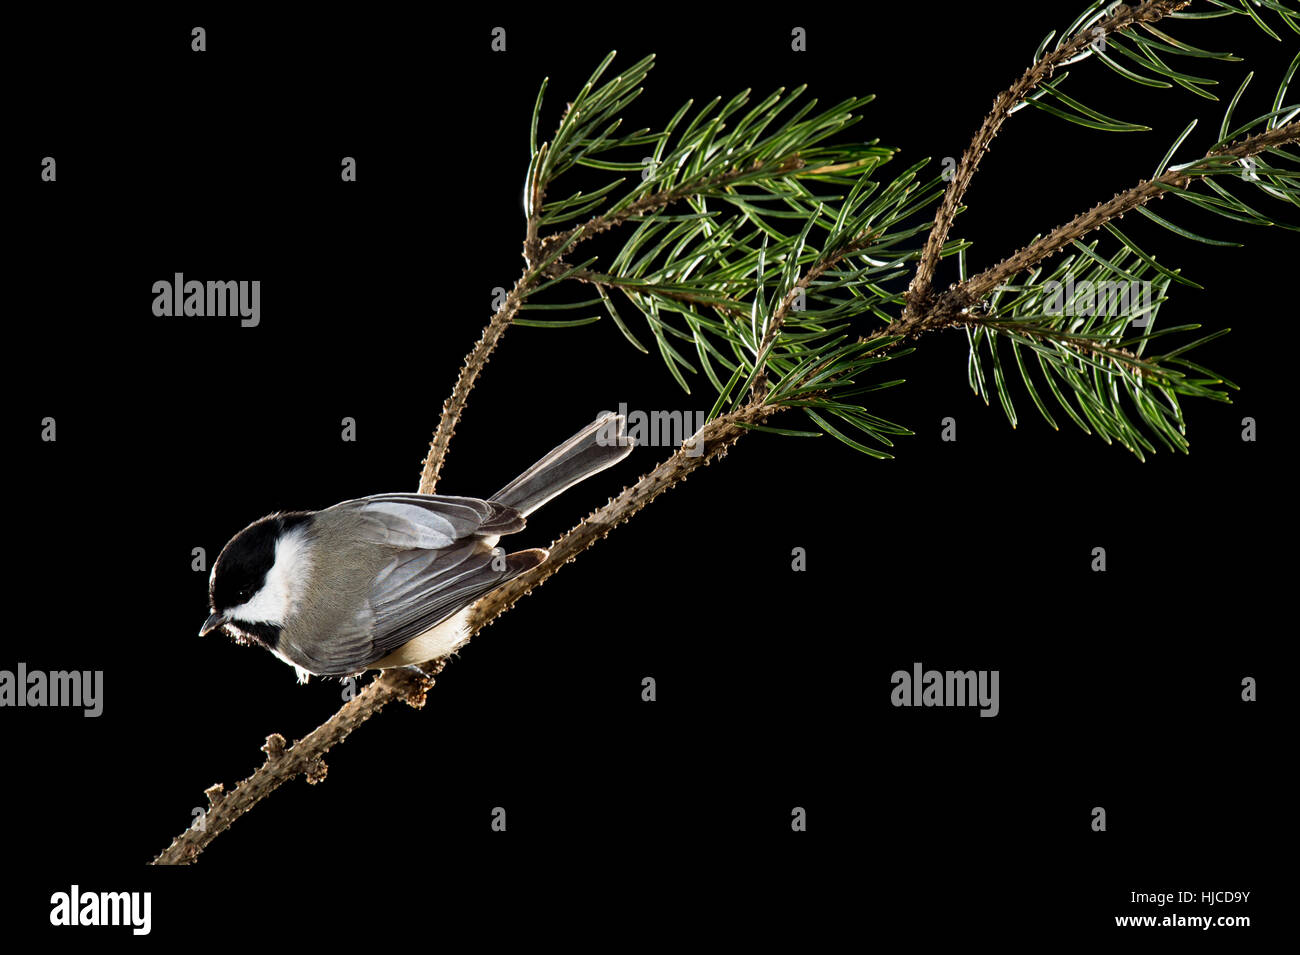 A Carolina Chickadee is perched on a pine branch against a black background. - Stock Image